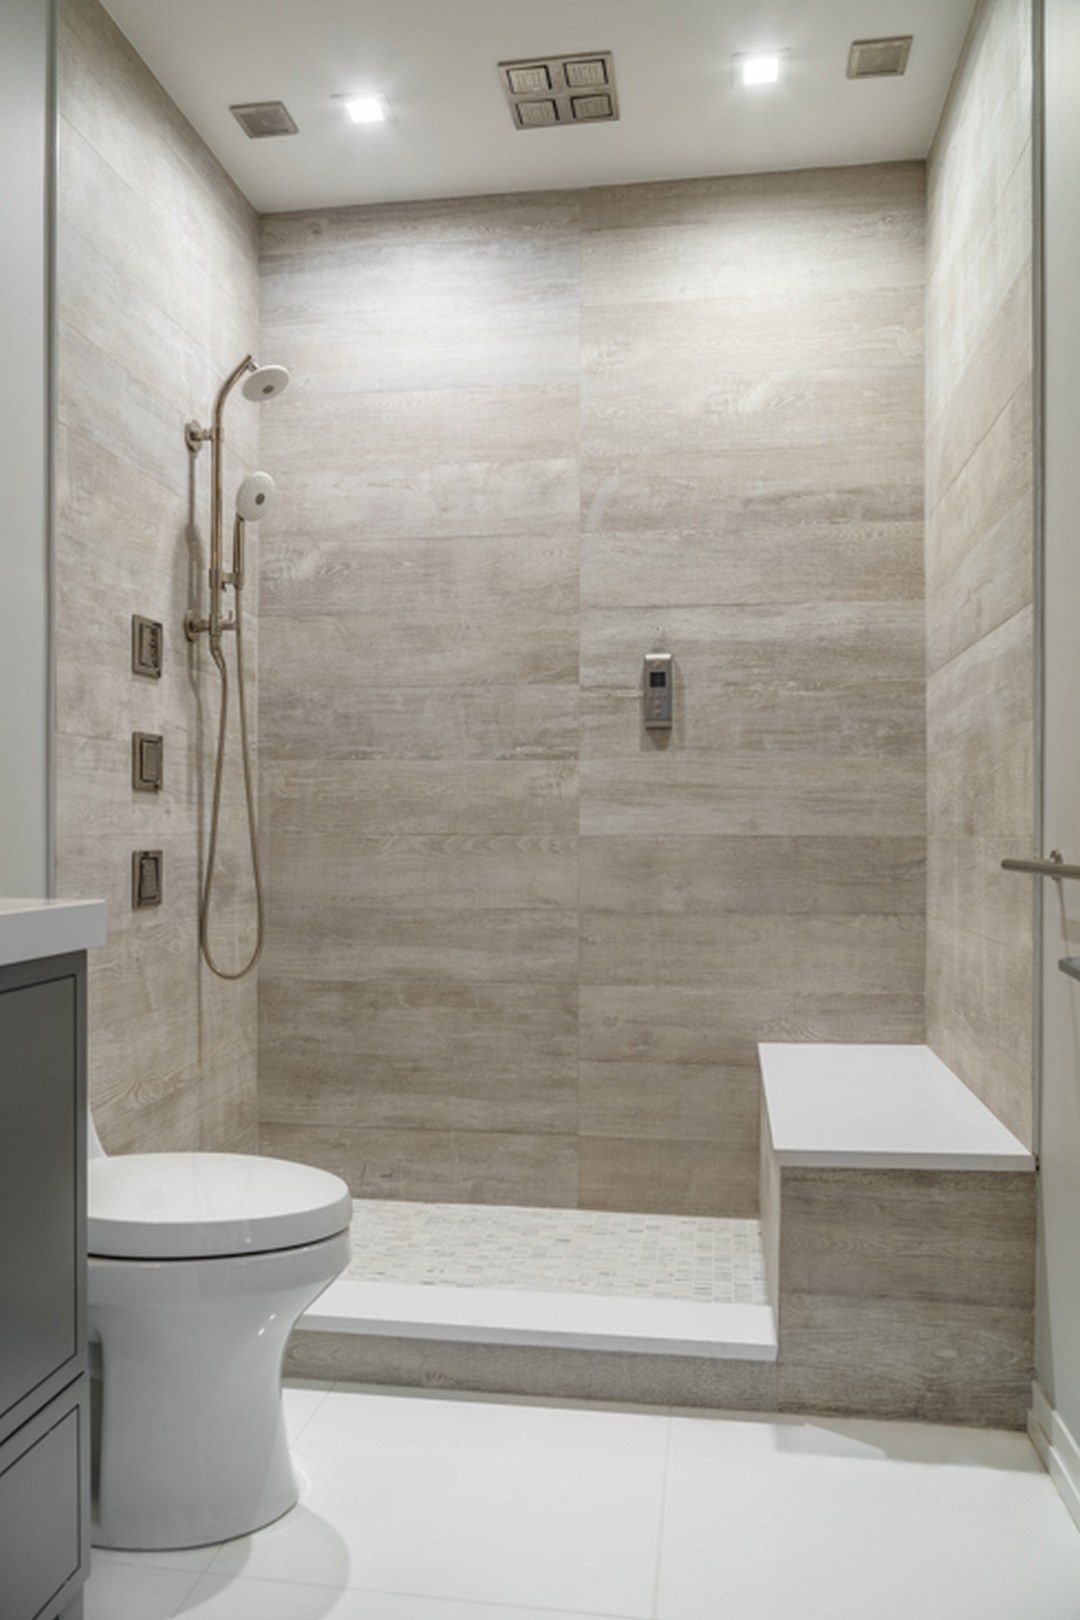 Why You Should Remodel Your Bathroom Bathroom Remodel Shower